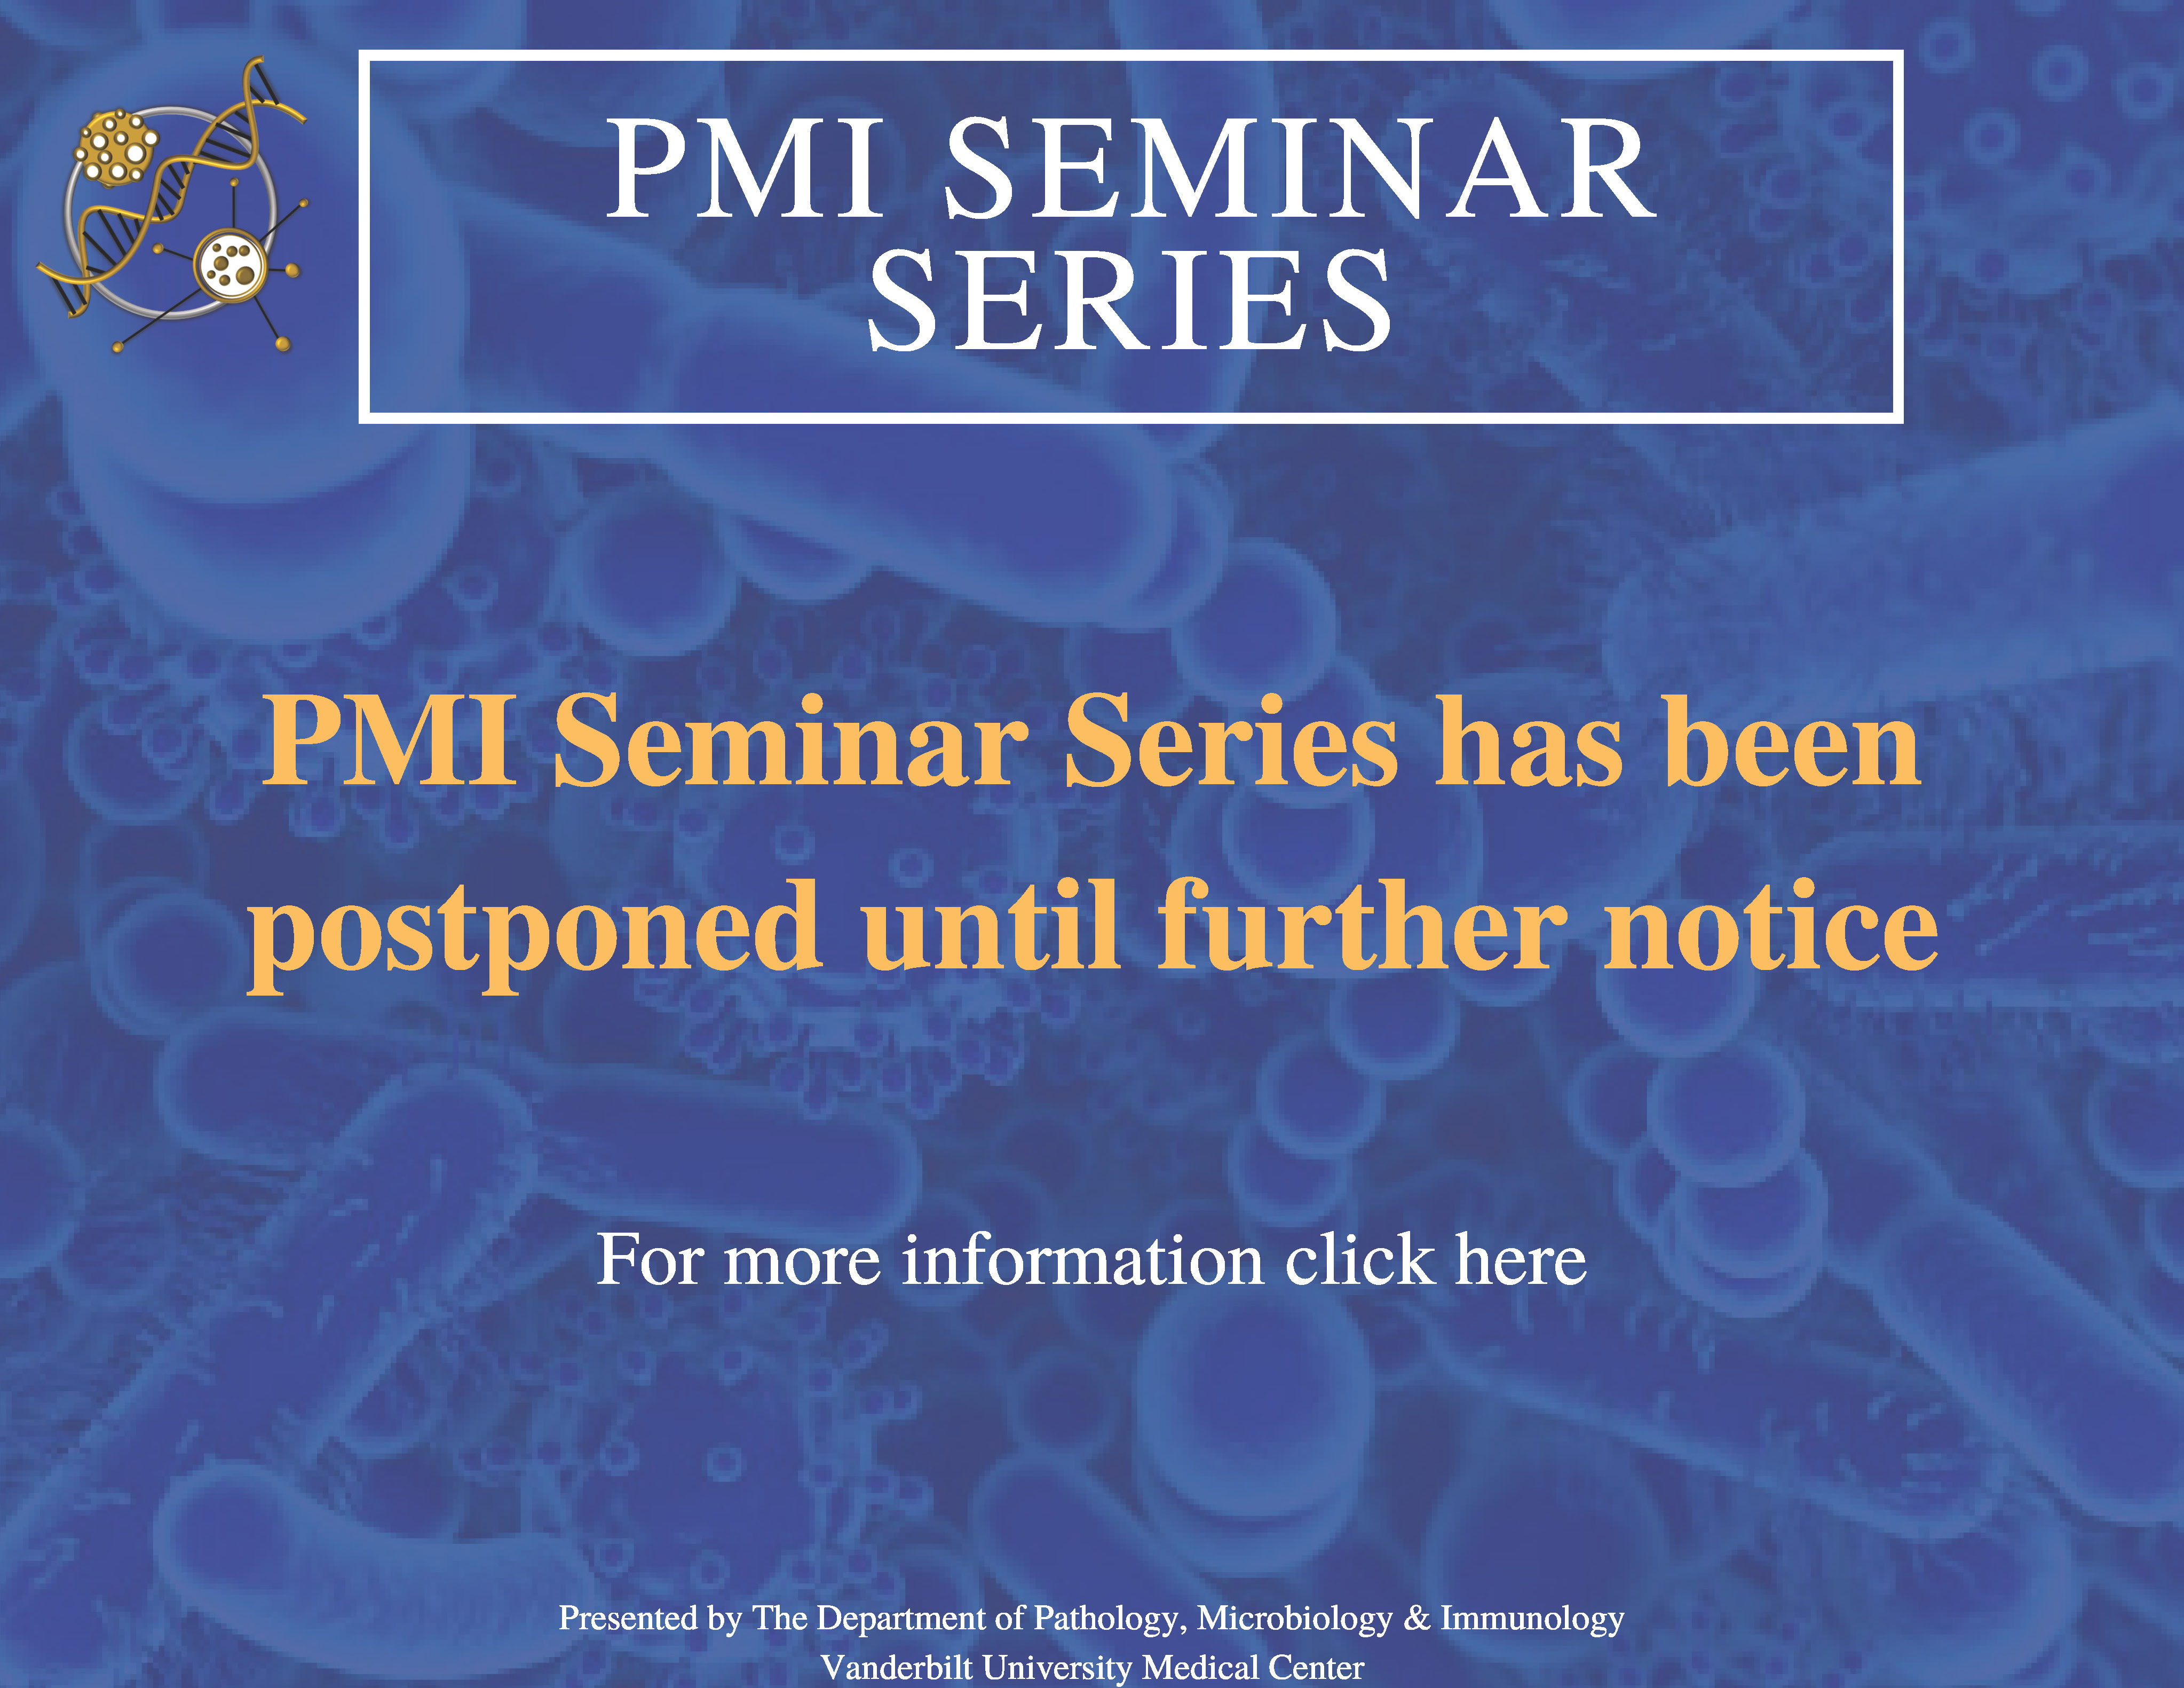 PMI Seminar Series has been canceled through April 30th. Click here for more information.